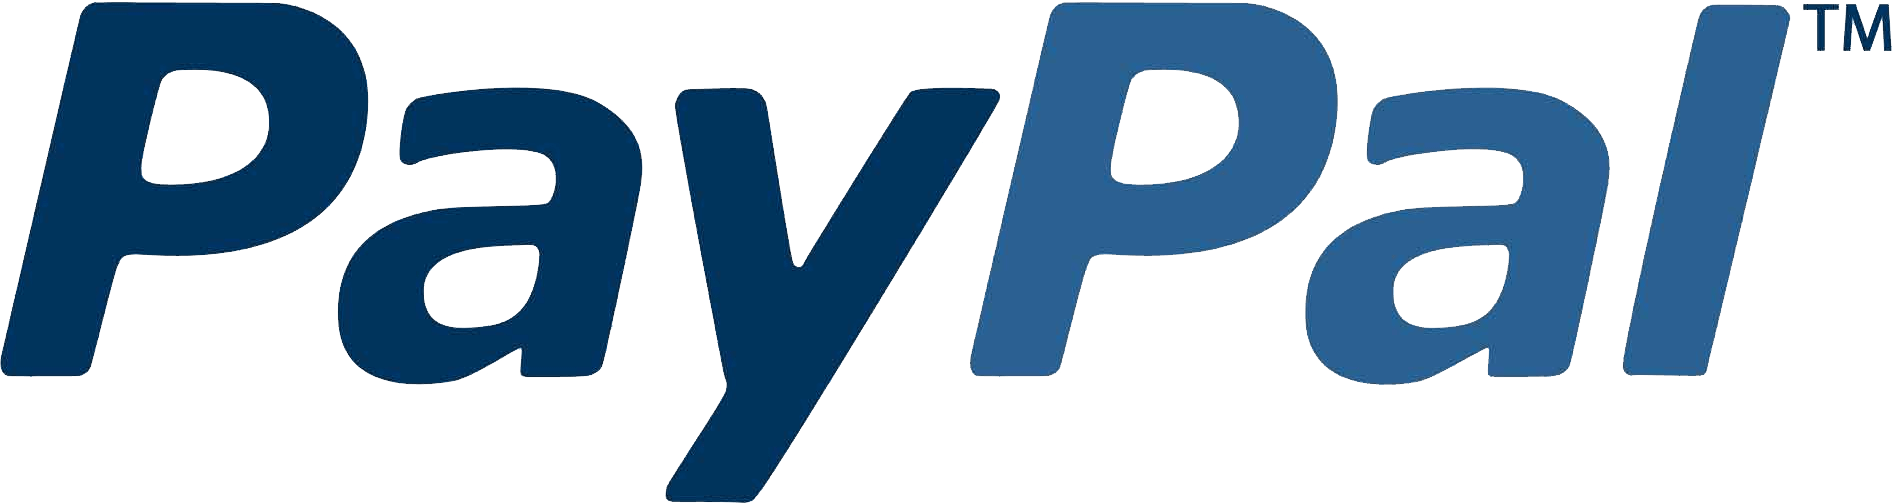 paypal mobile payment apps